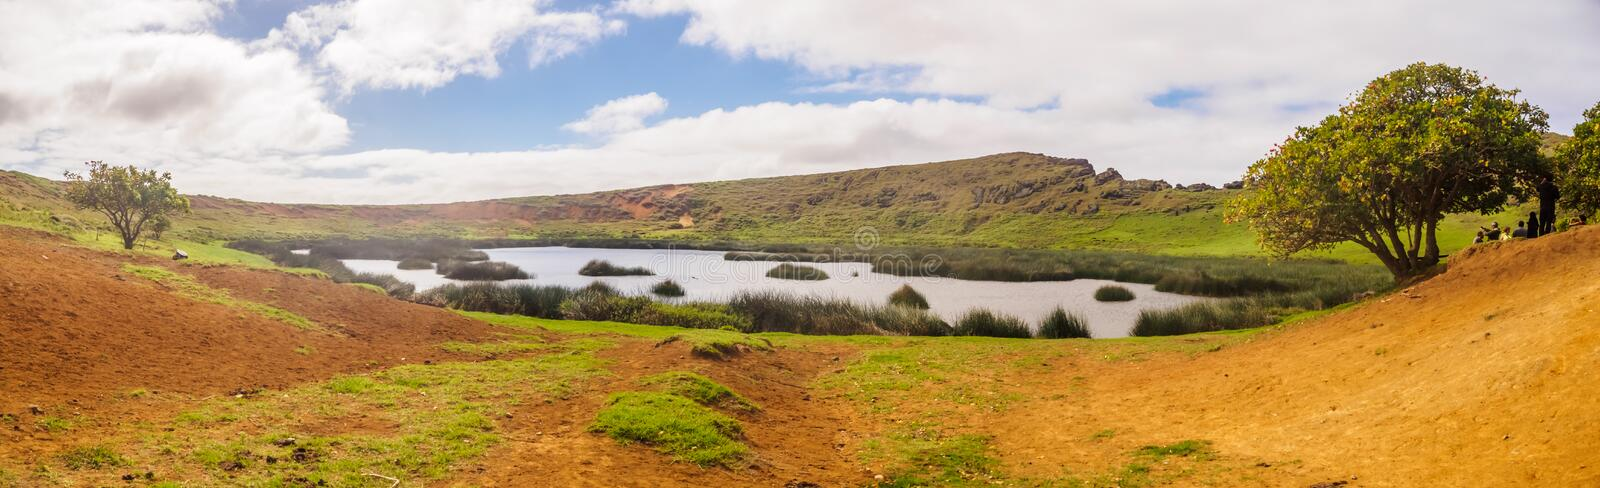 Panoramic view of the lagoon in the crater of the Rano Raraku volcano on Easter Island. Quarry of the Moai royalty free stock images